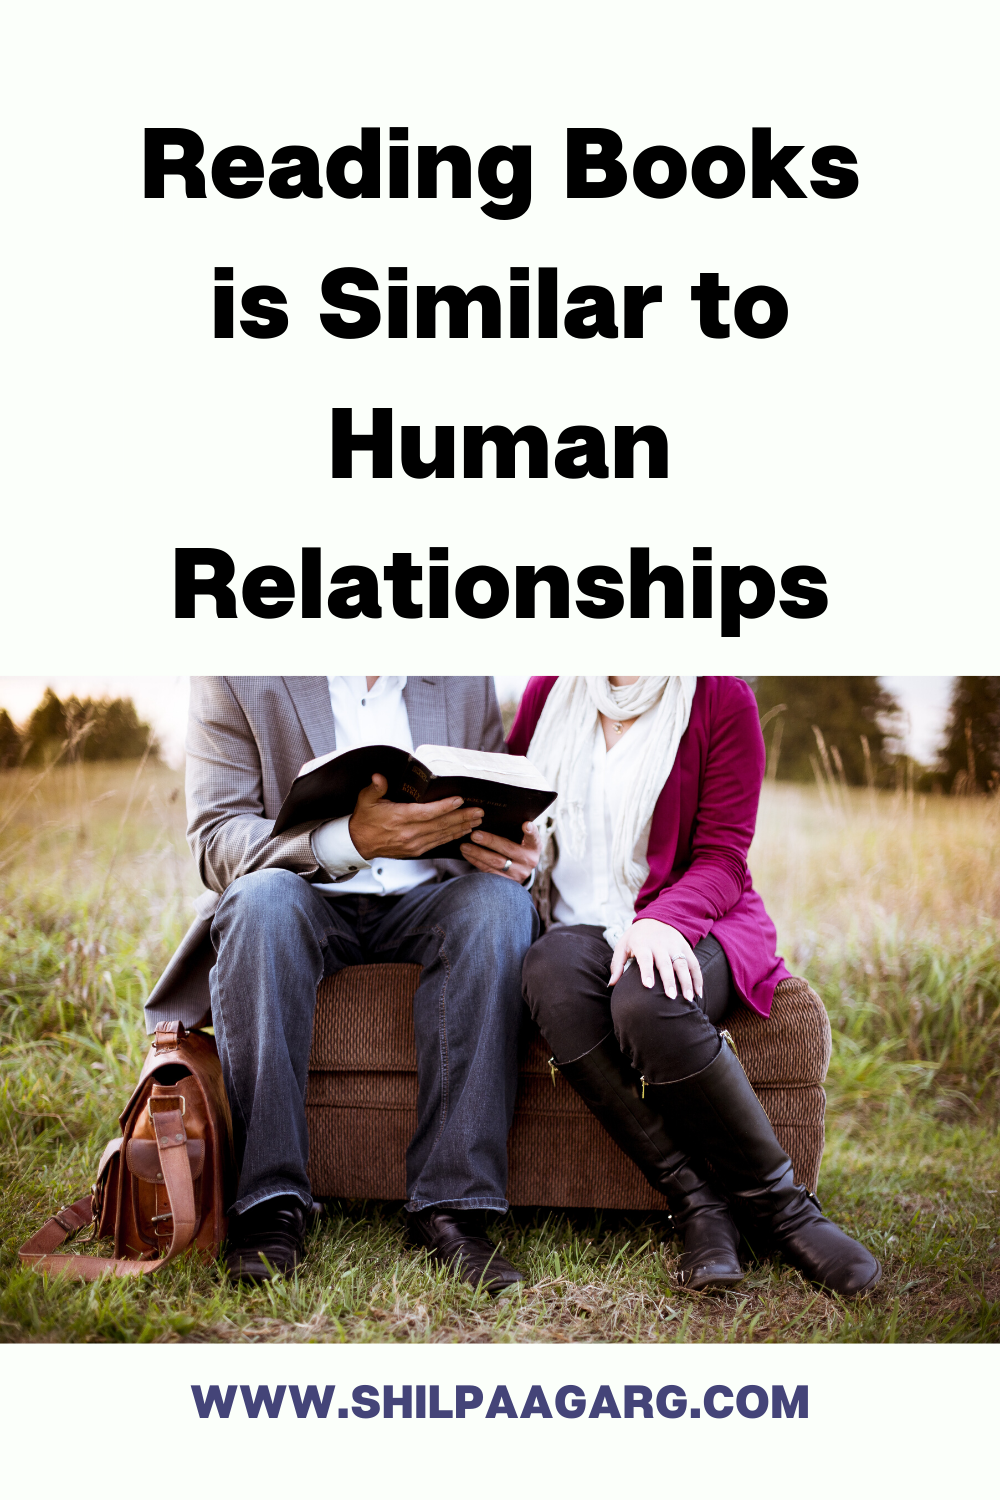 Reading Books is Similar to Human Relationships